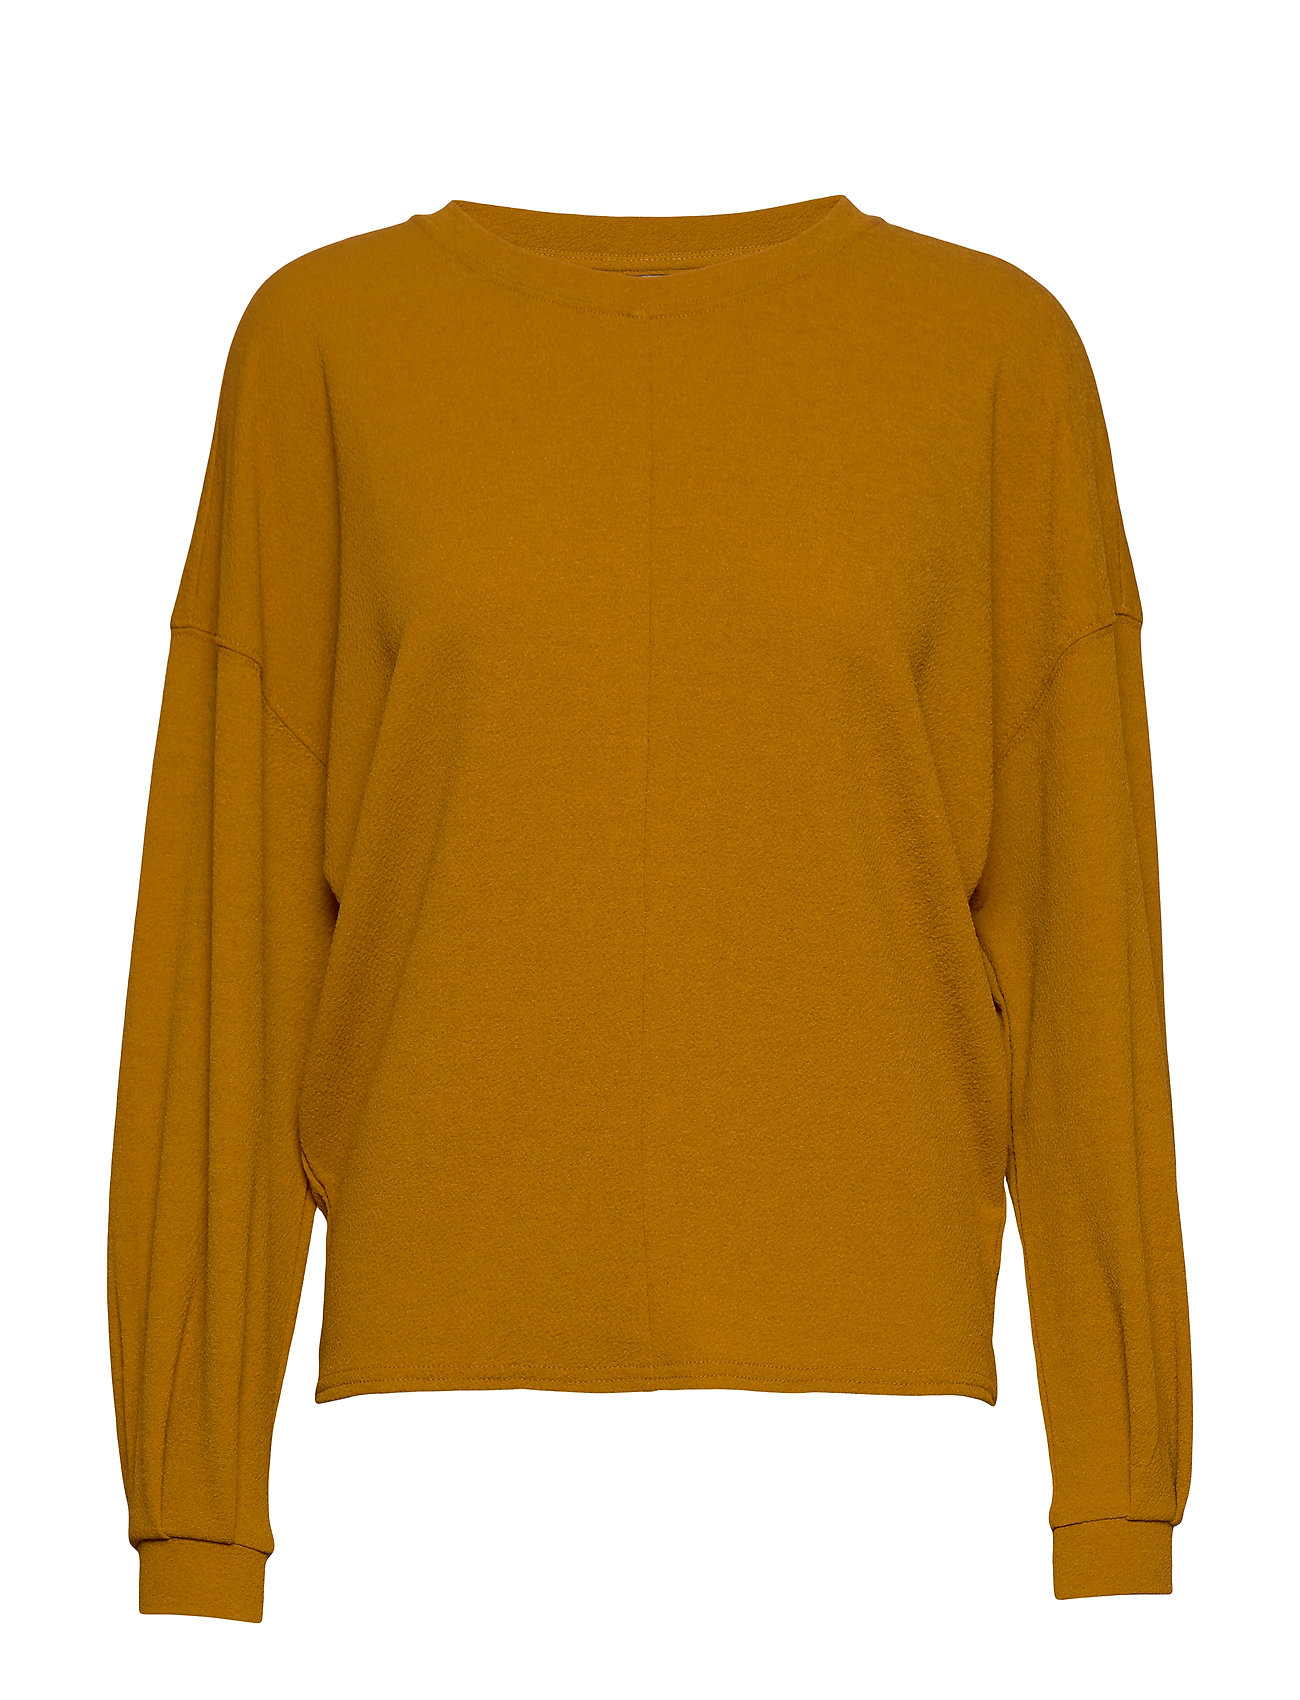 Fransa FRFISTRUC 1 Blouse - CATHAY SPICE